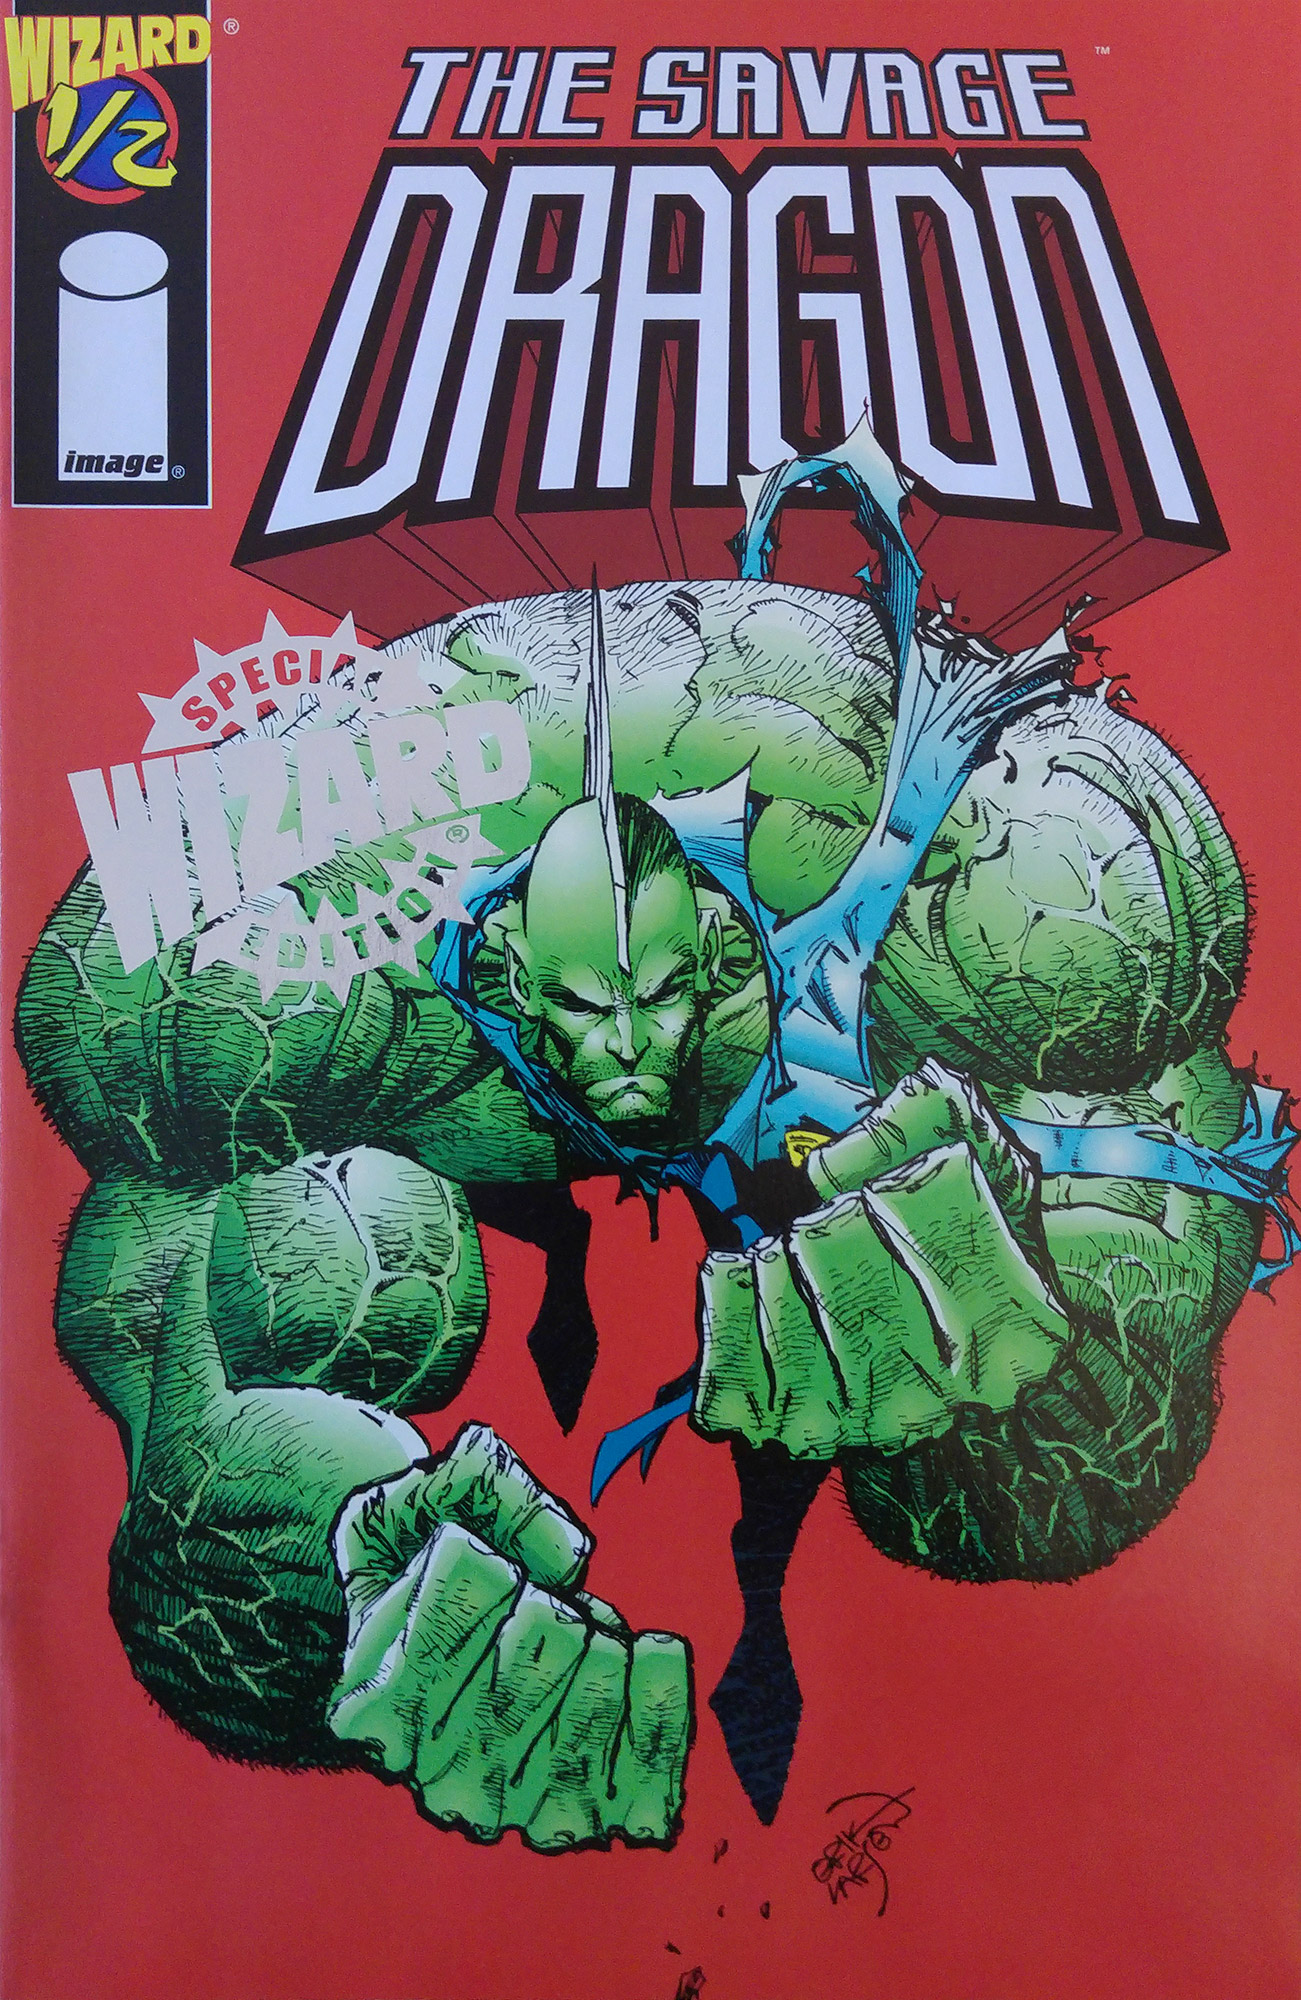 Cover Savage Dragon Vol.2 #1/2